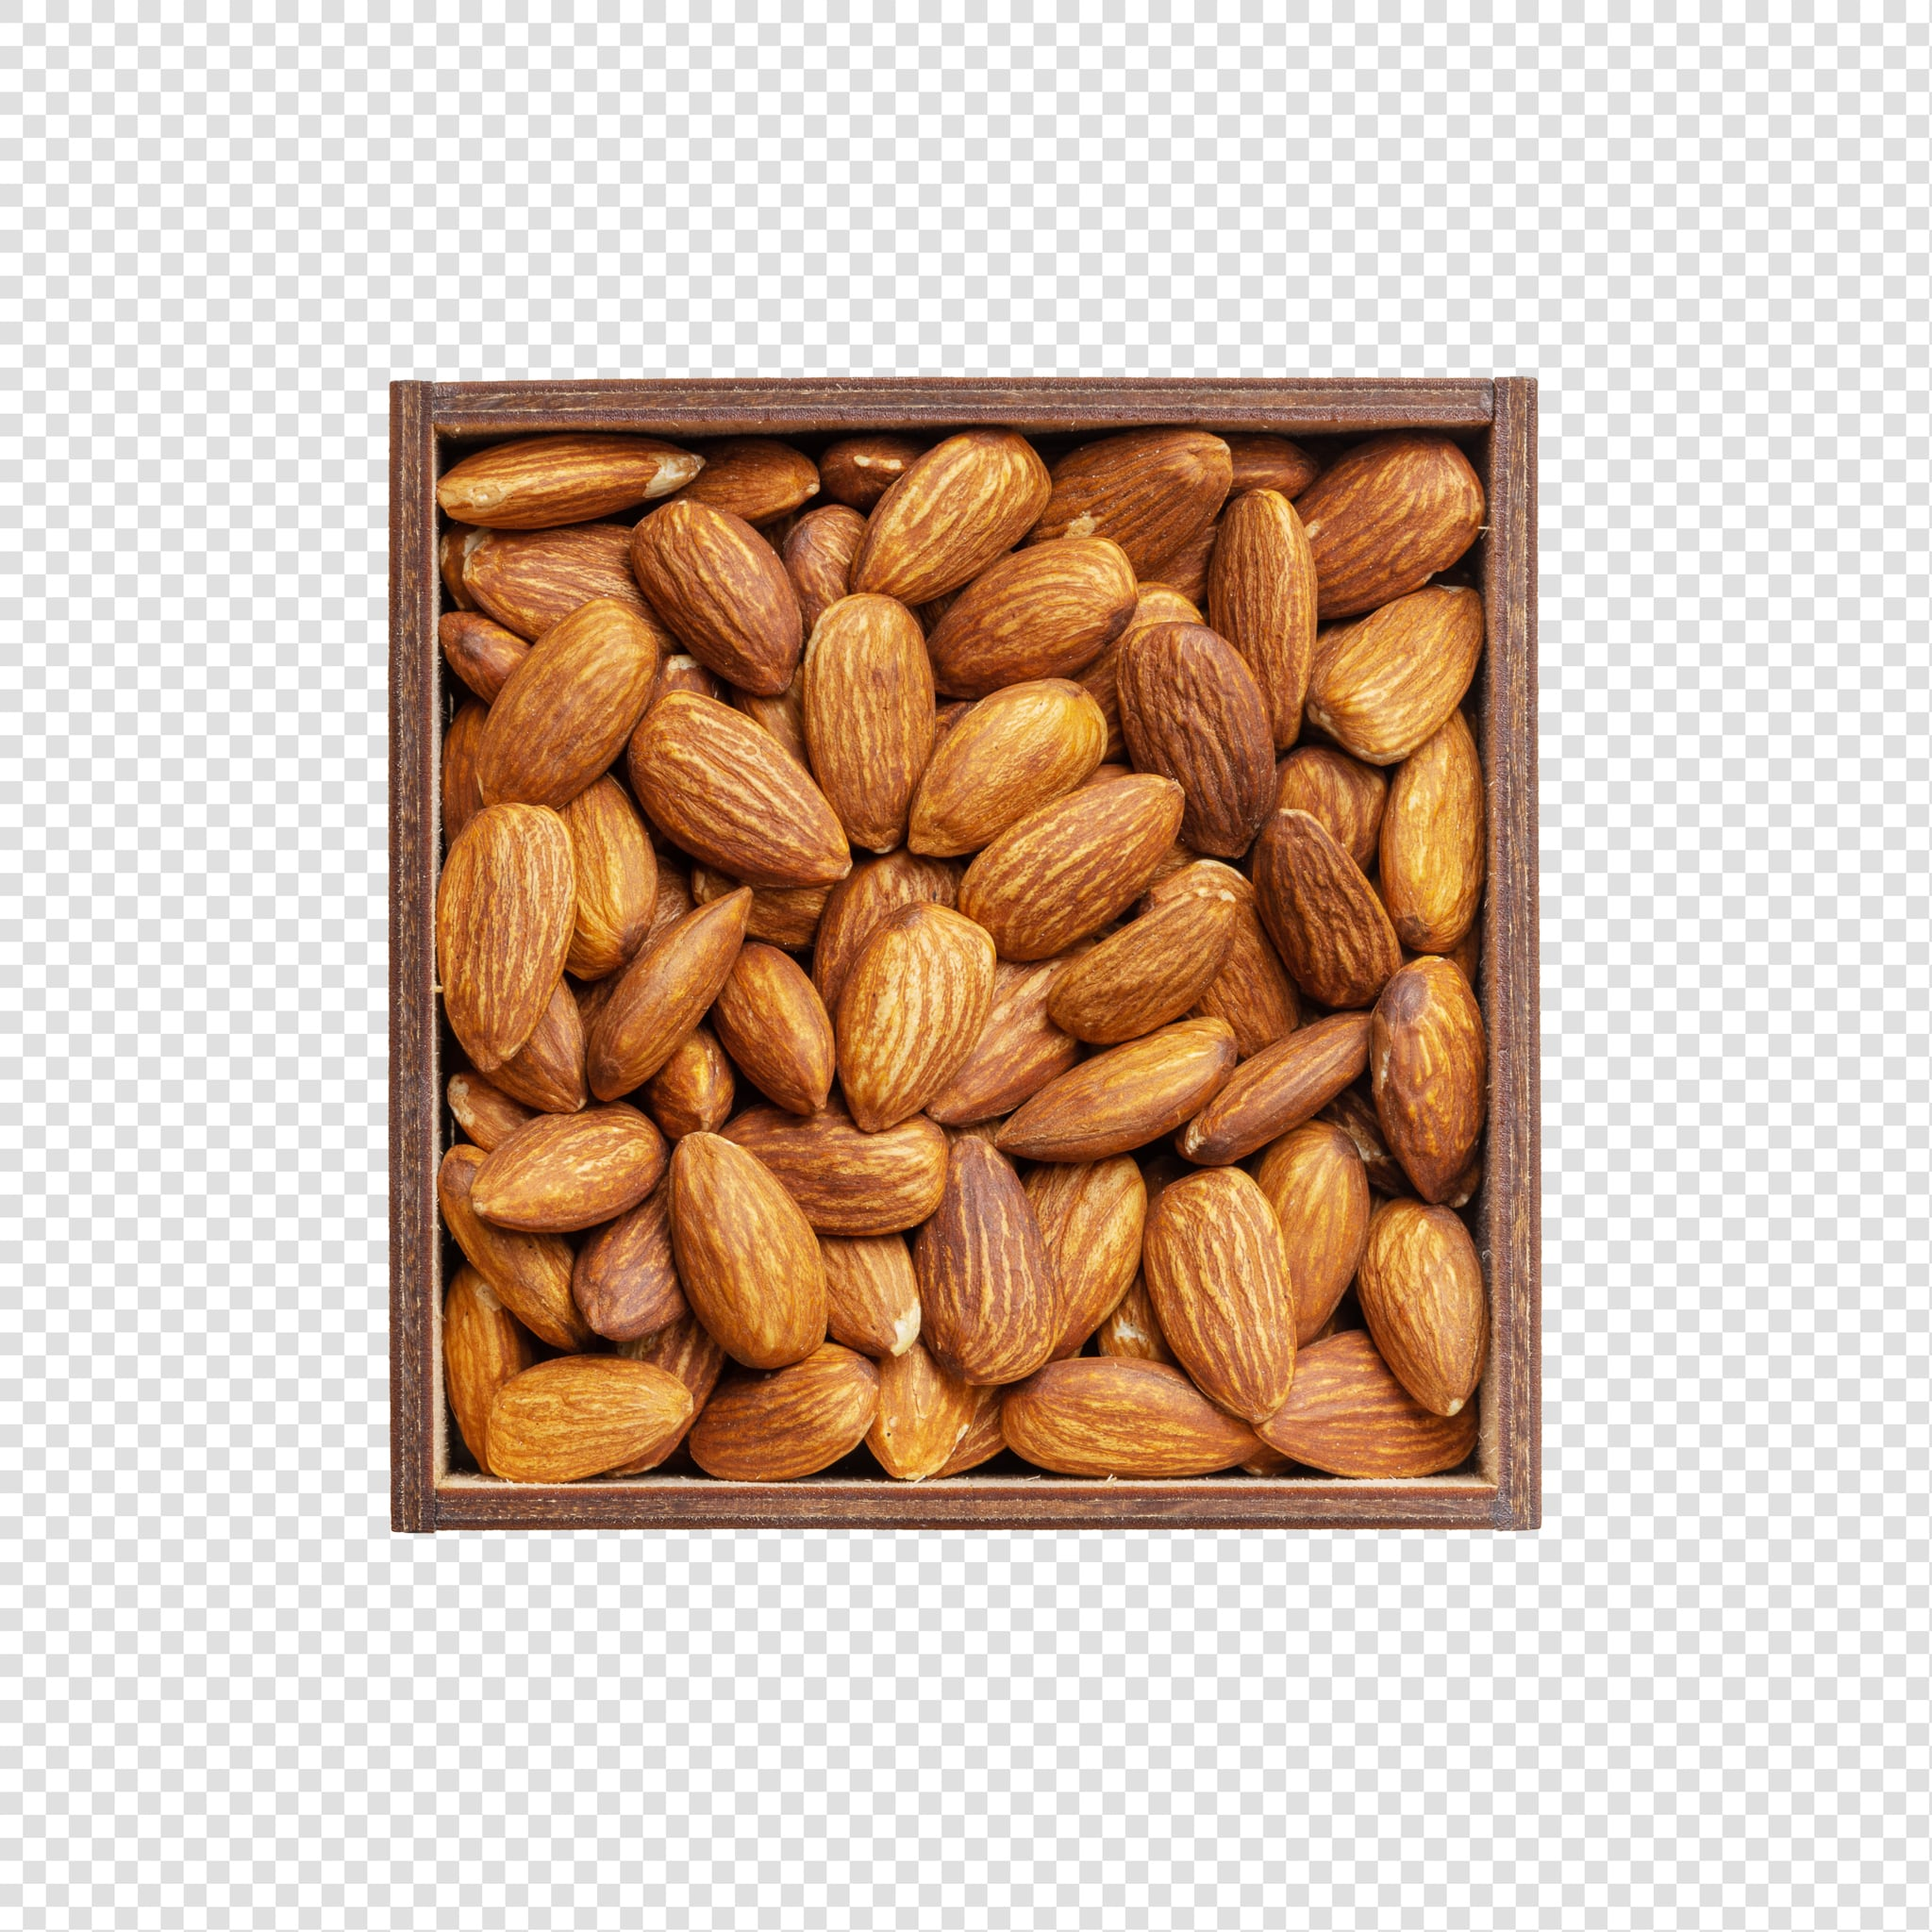 Clean Isolated PSD image of Box of almonds on transparent background with separated shadow